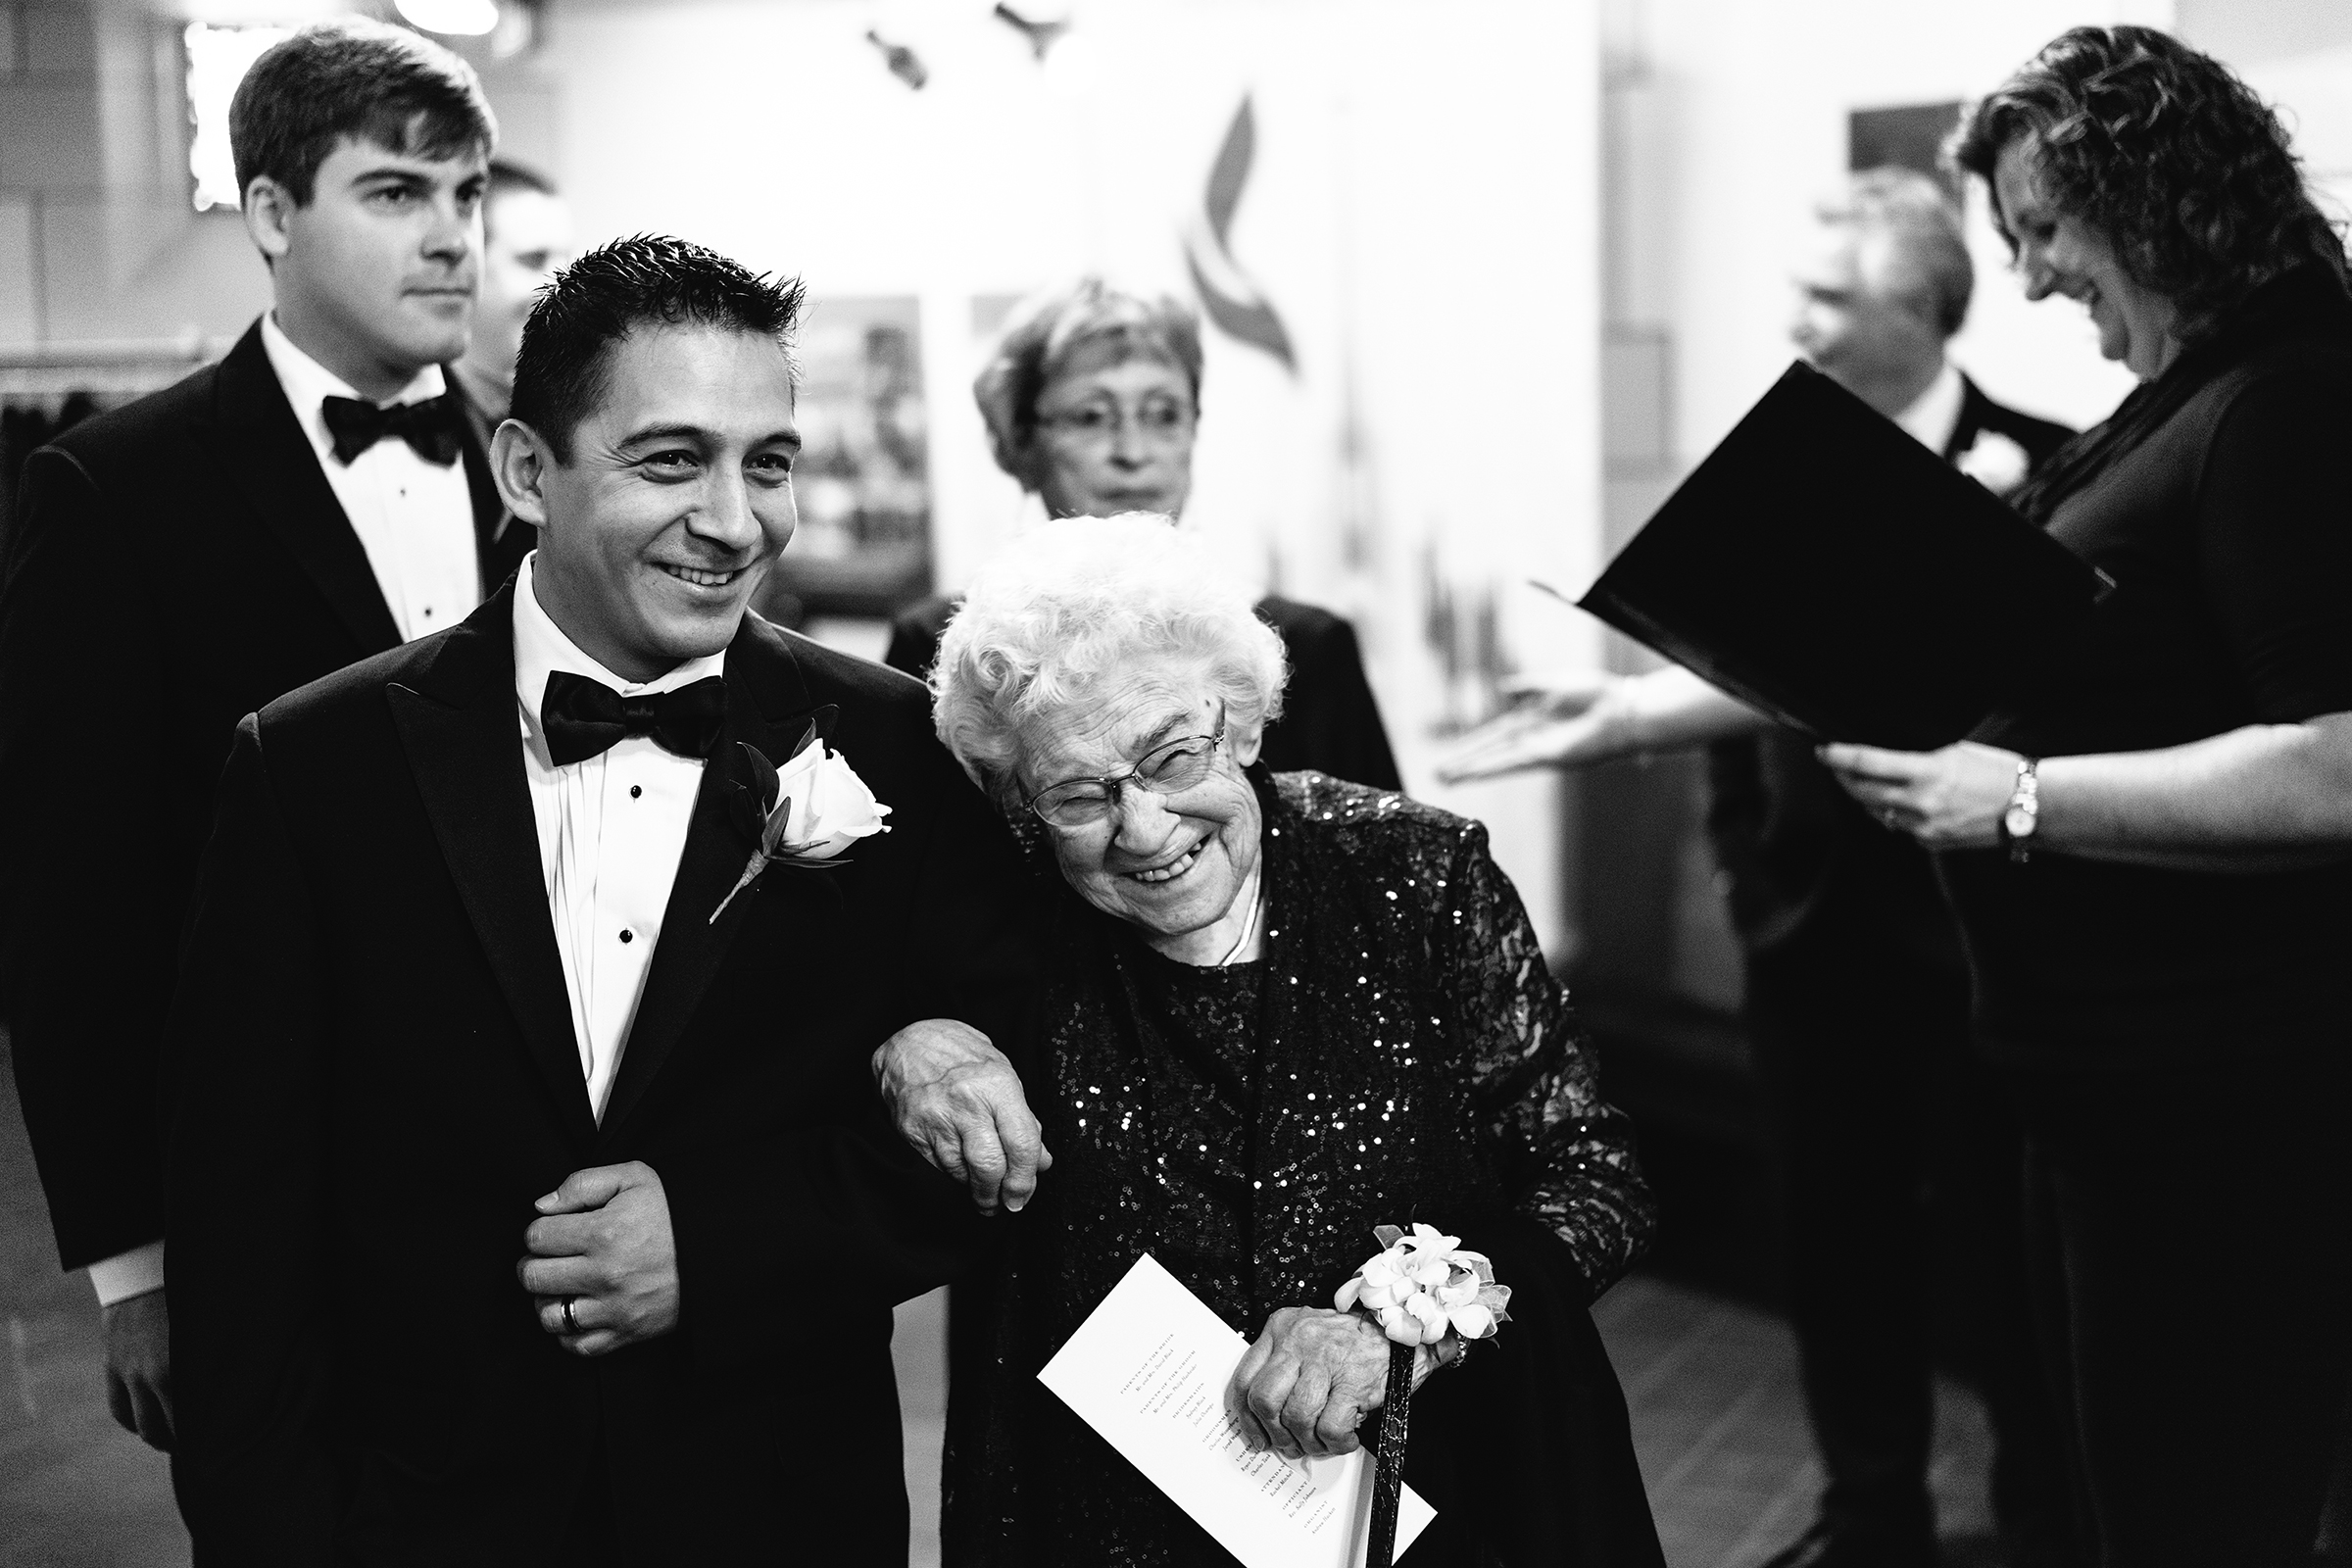 Happy grandma links arms with groom - photo by Bradley Hanson Photography